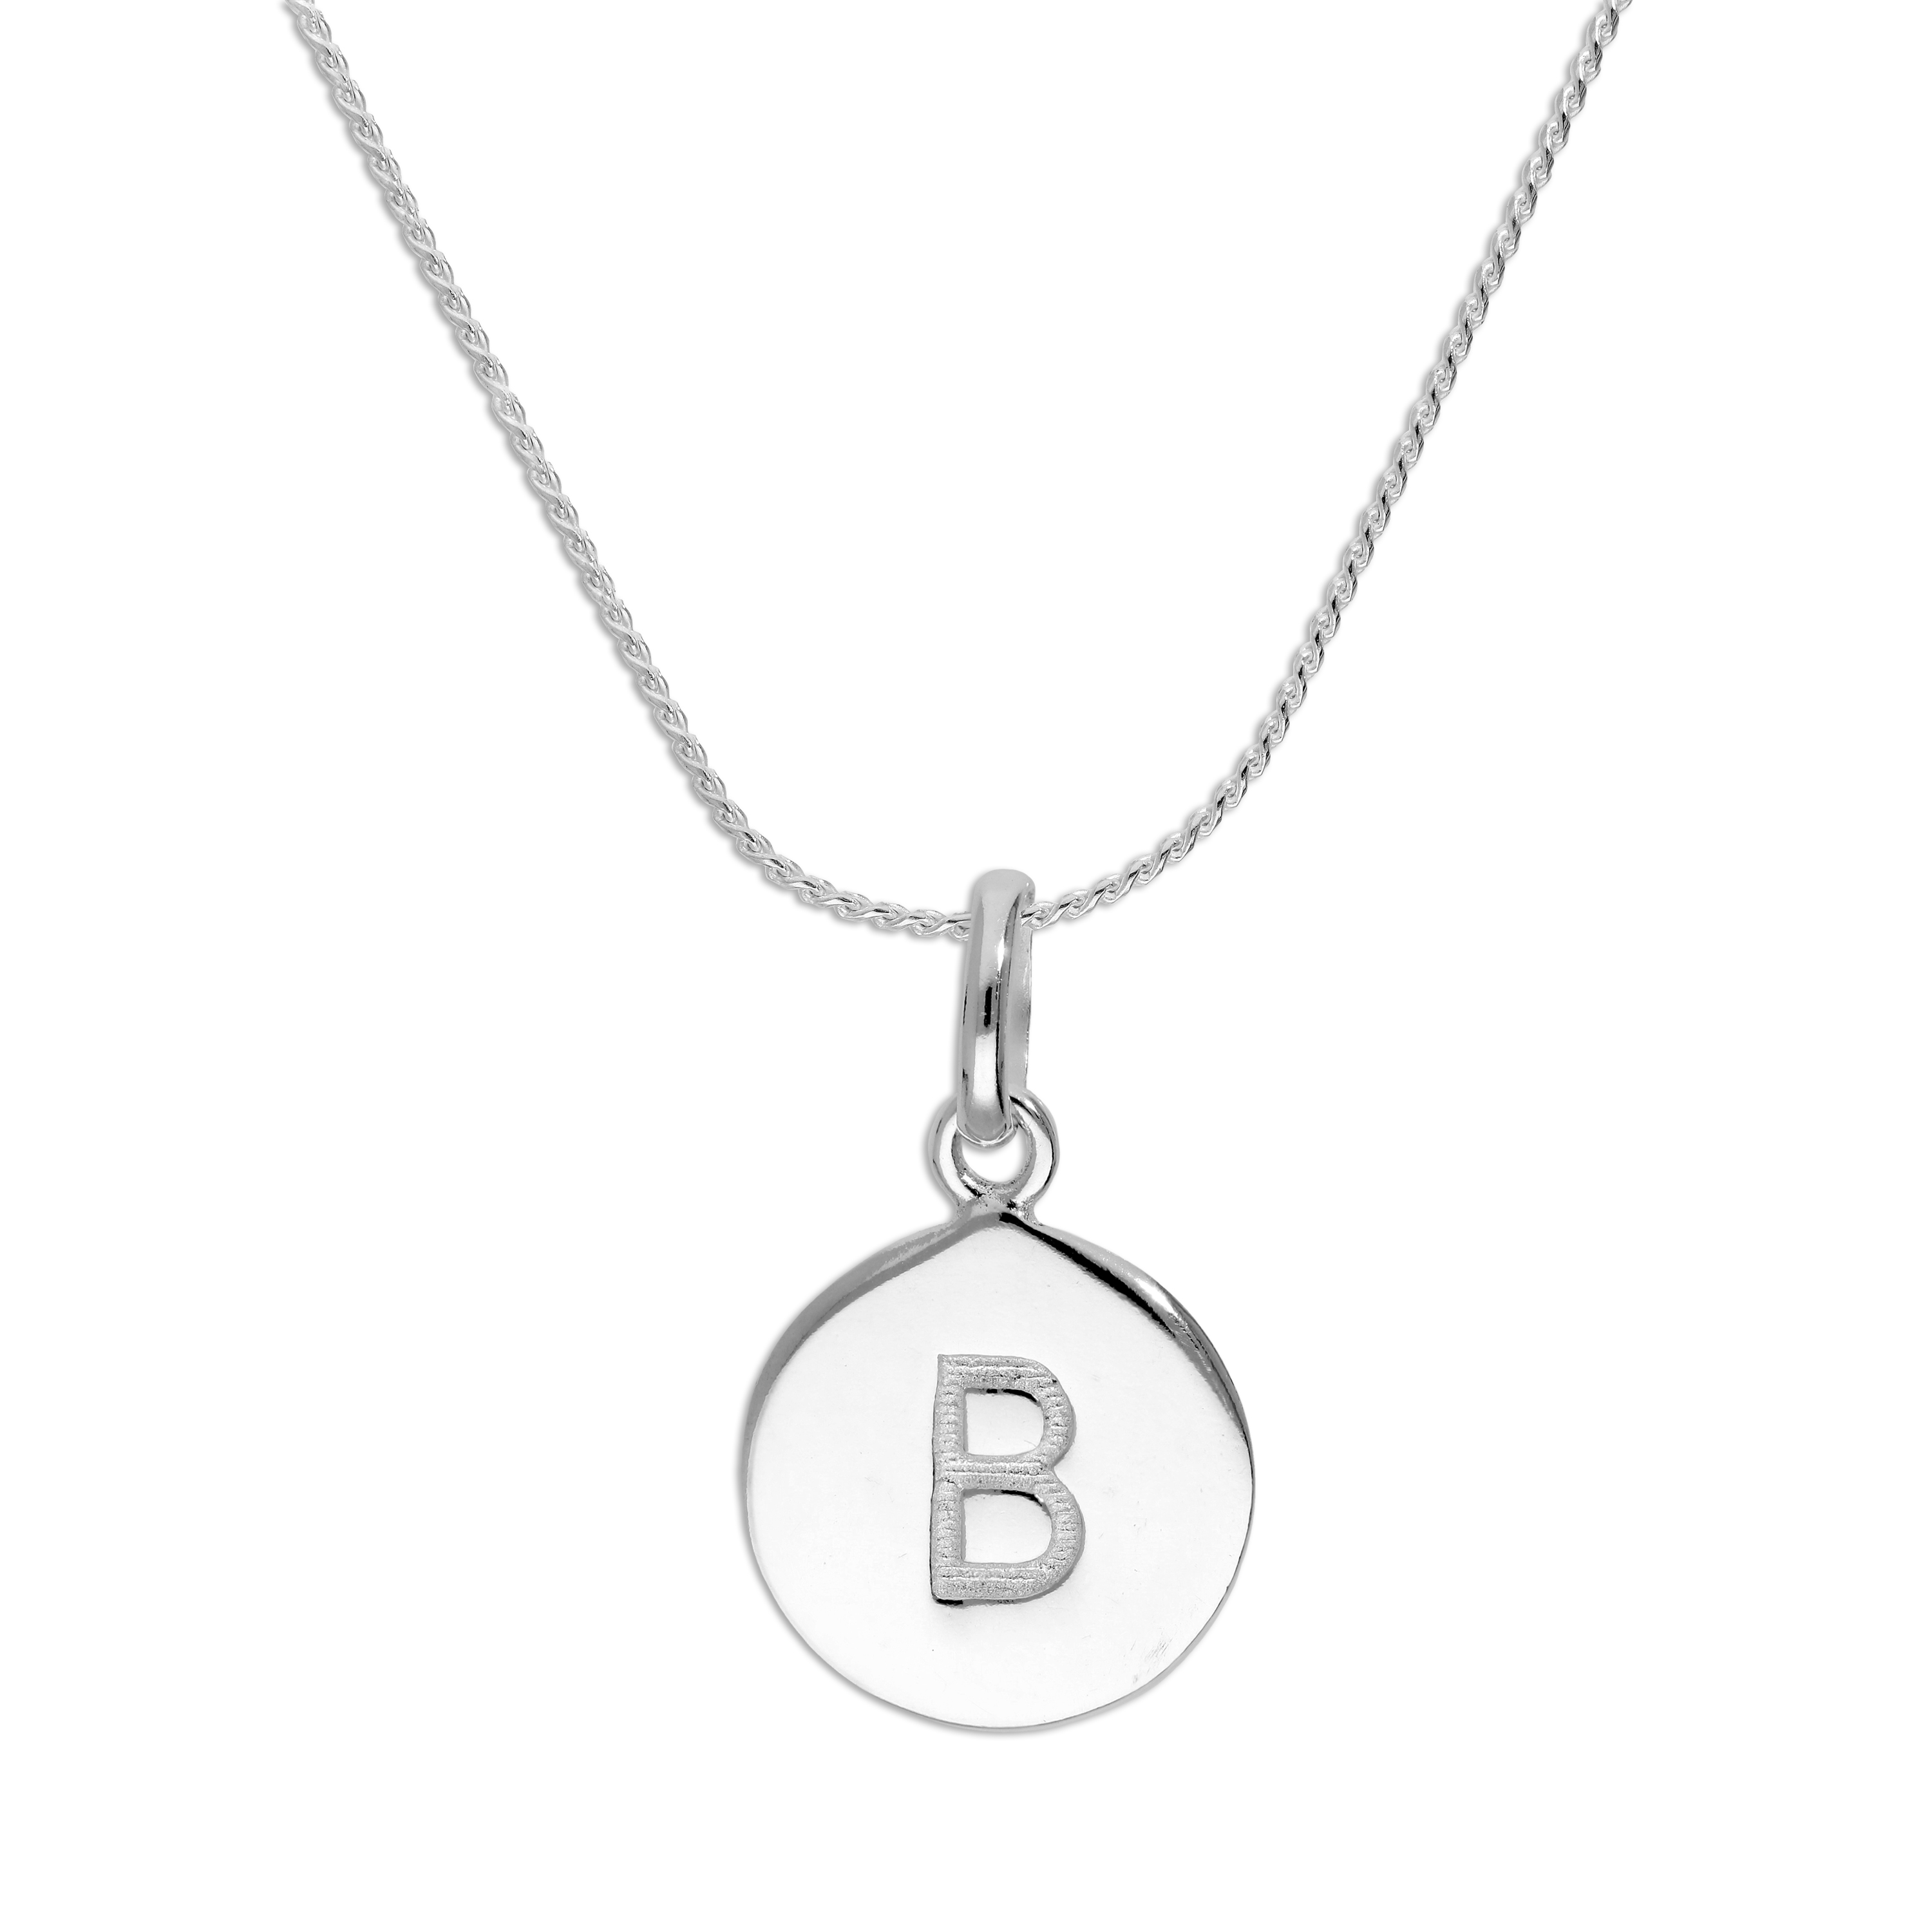 An image of Sterling Silver Initial Letter B Necklace 22 Inches Blue